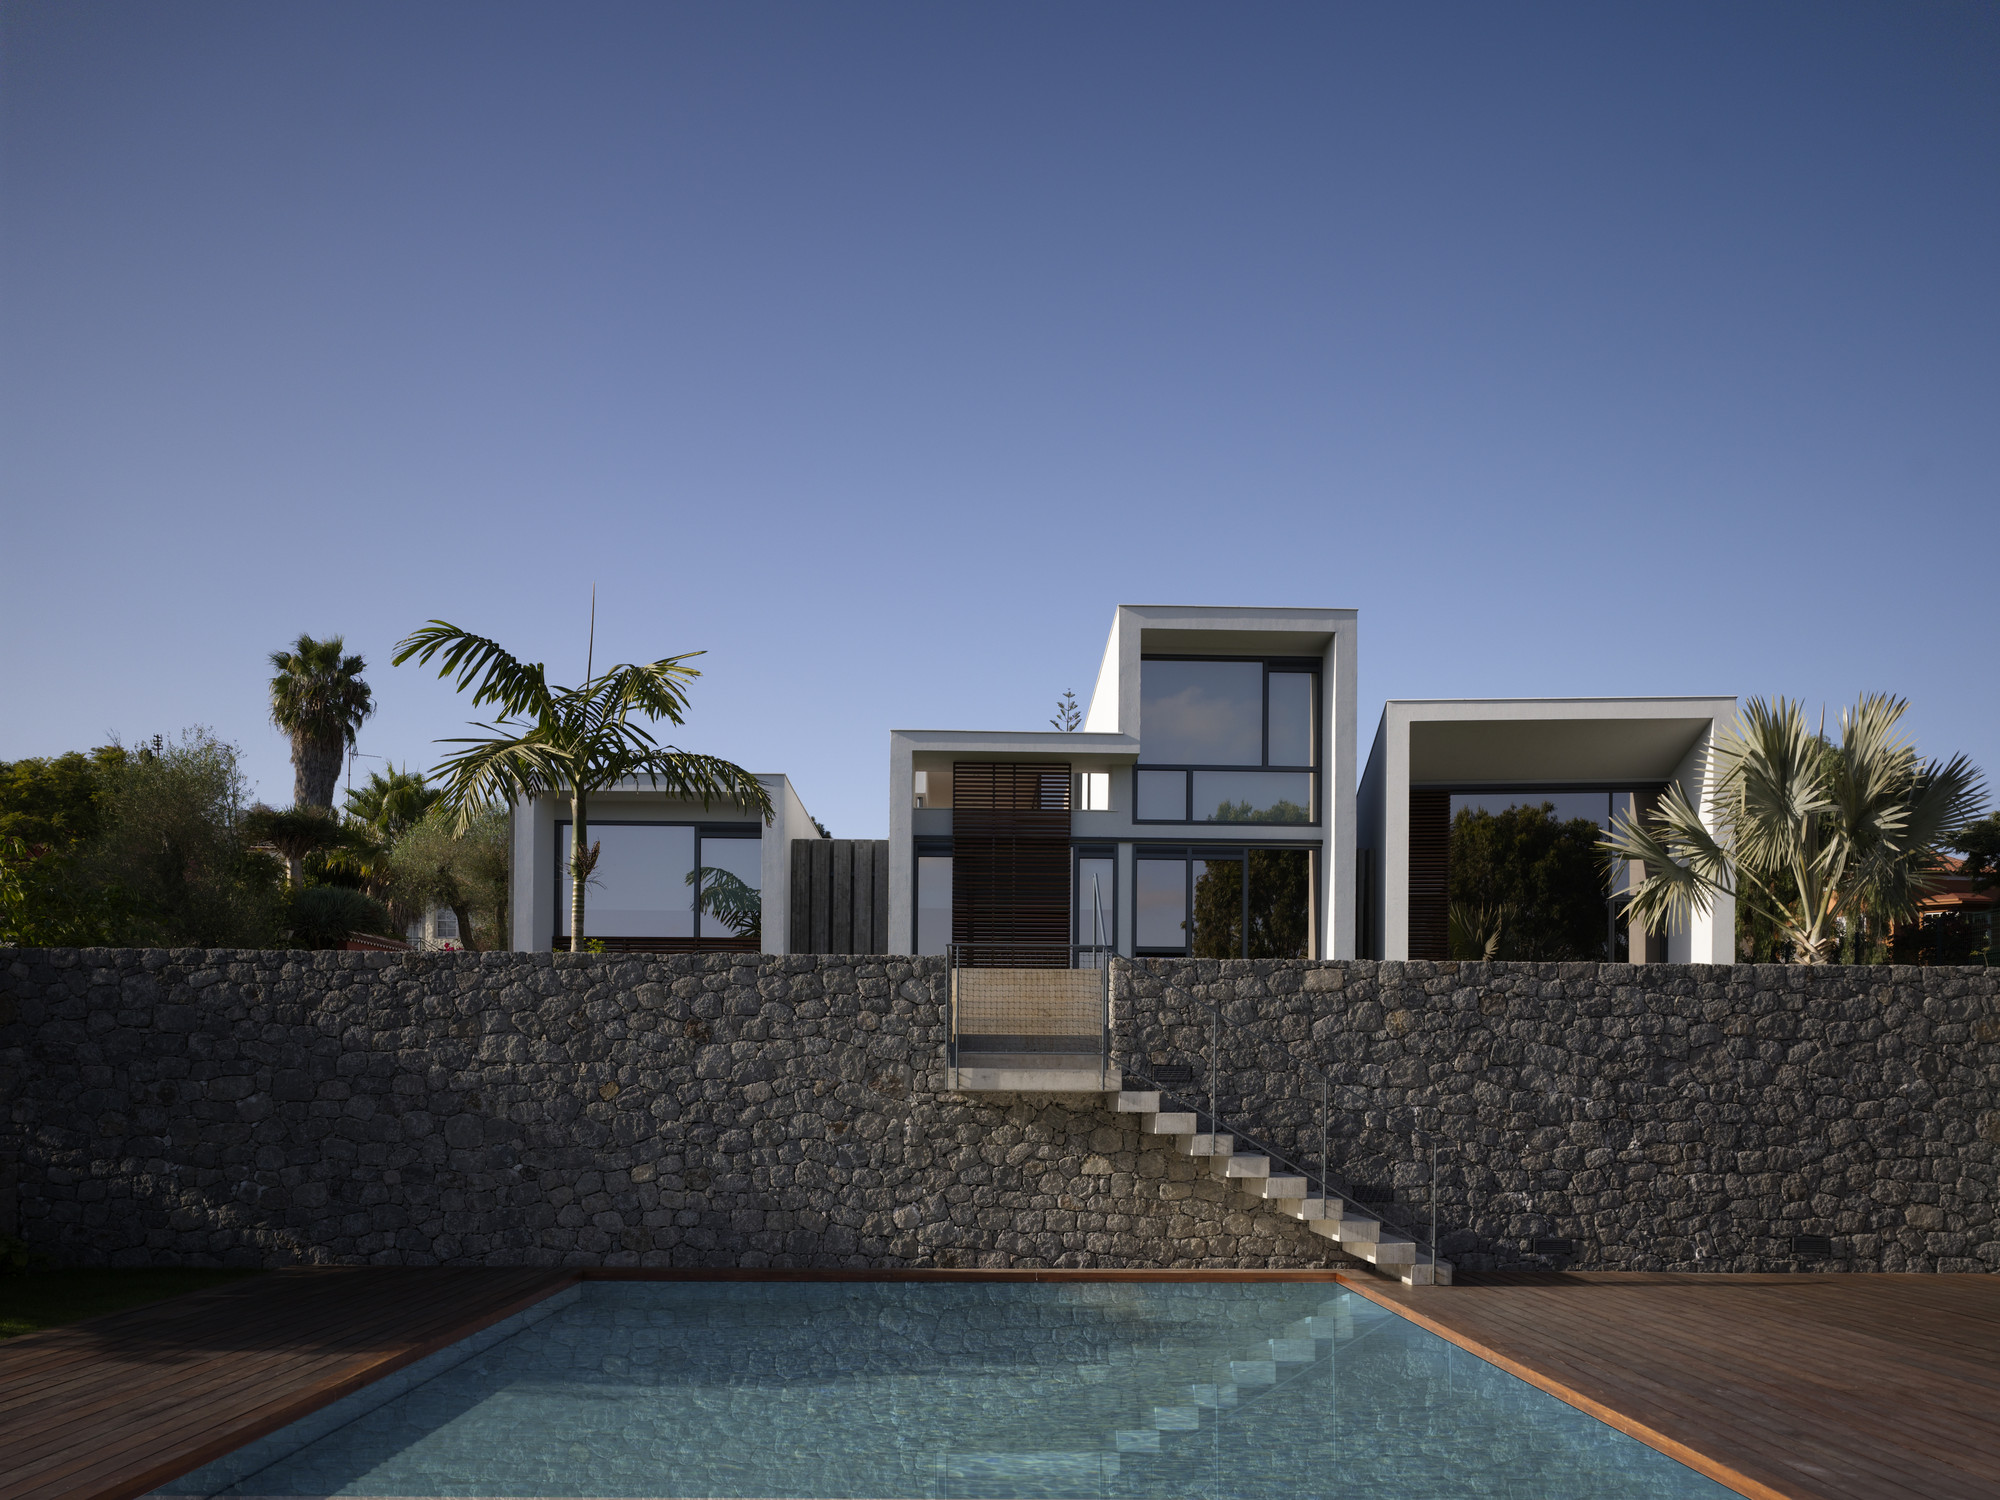 Z House / nred arquitectos, Courtesy of nred arquitectos